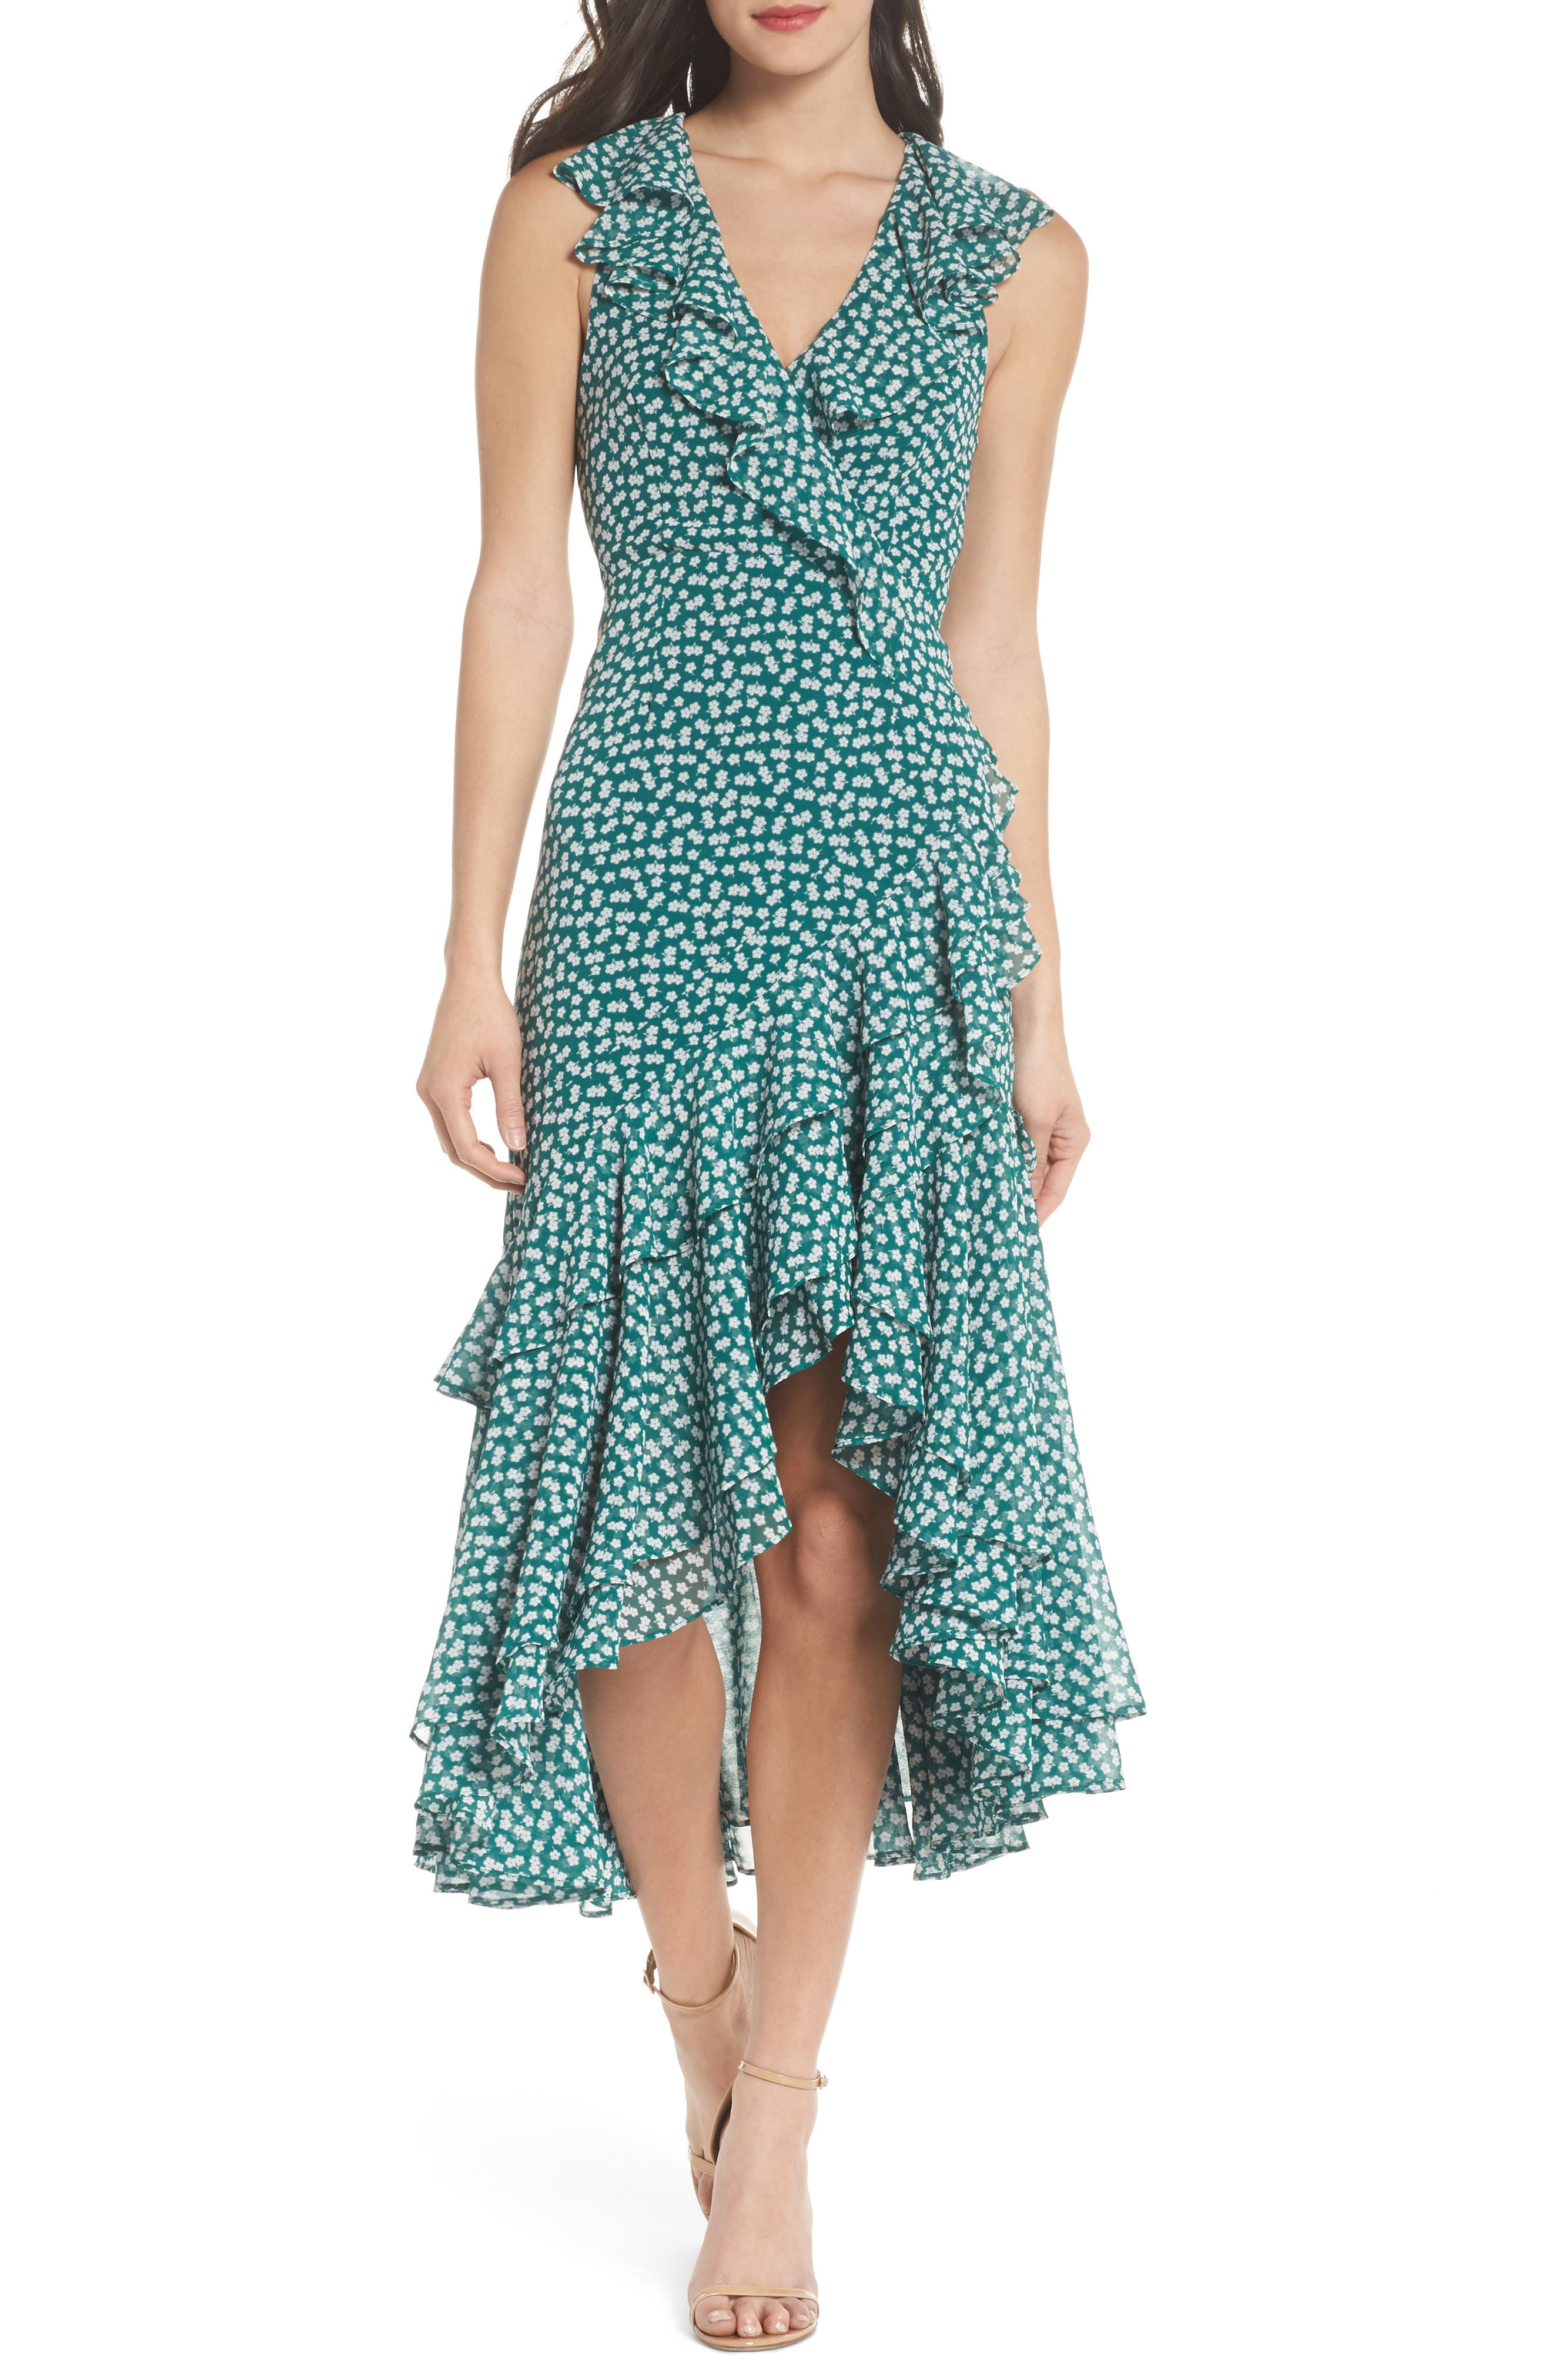 Be About You Ruffle Midi Dress,                             Main thumbnail 1, color,                             Green Daisy